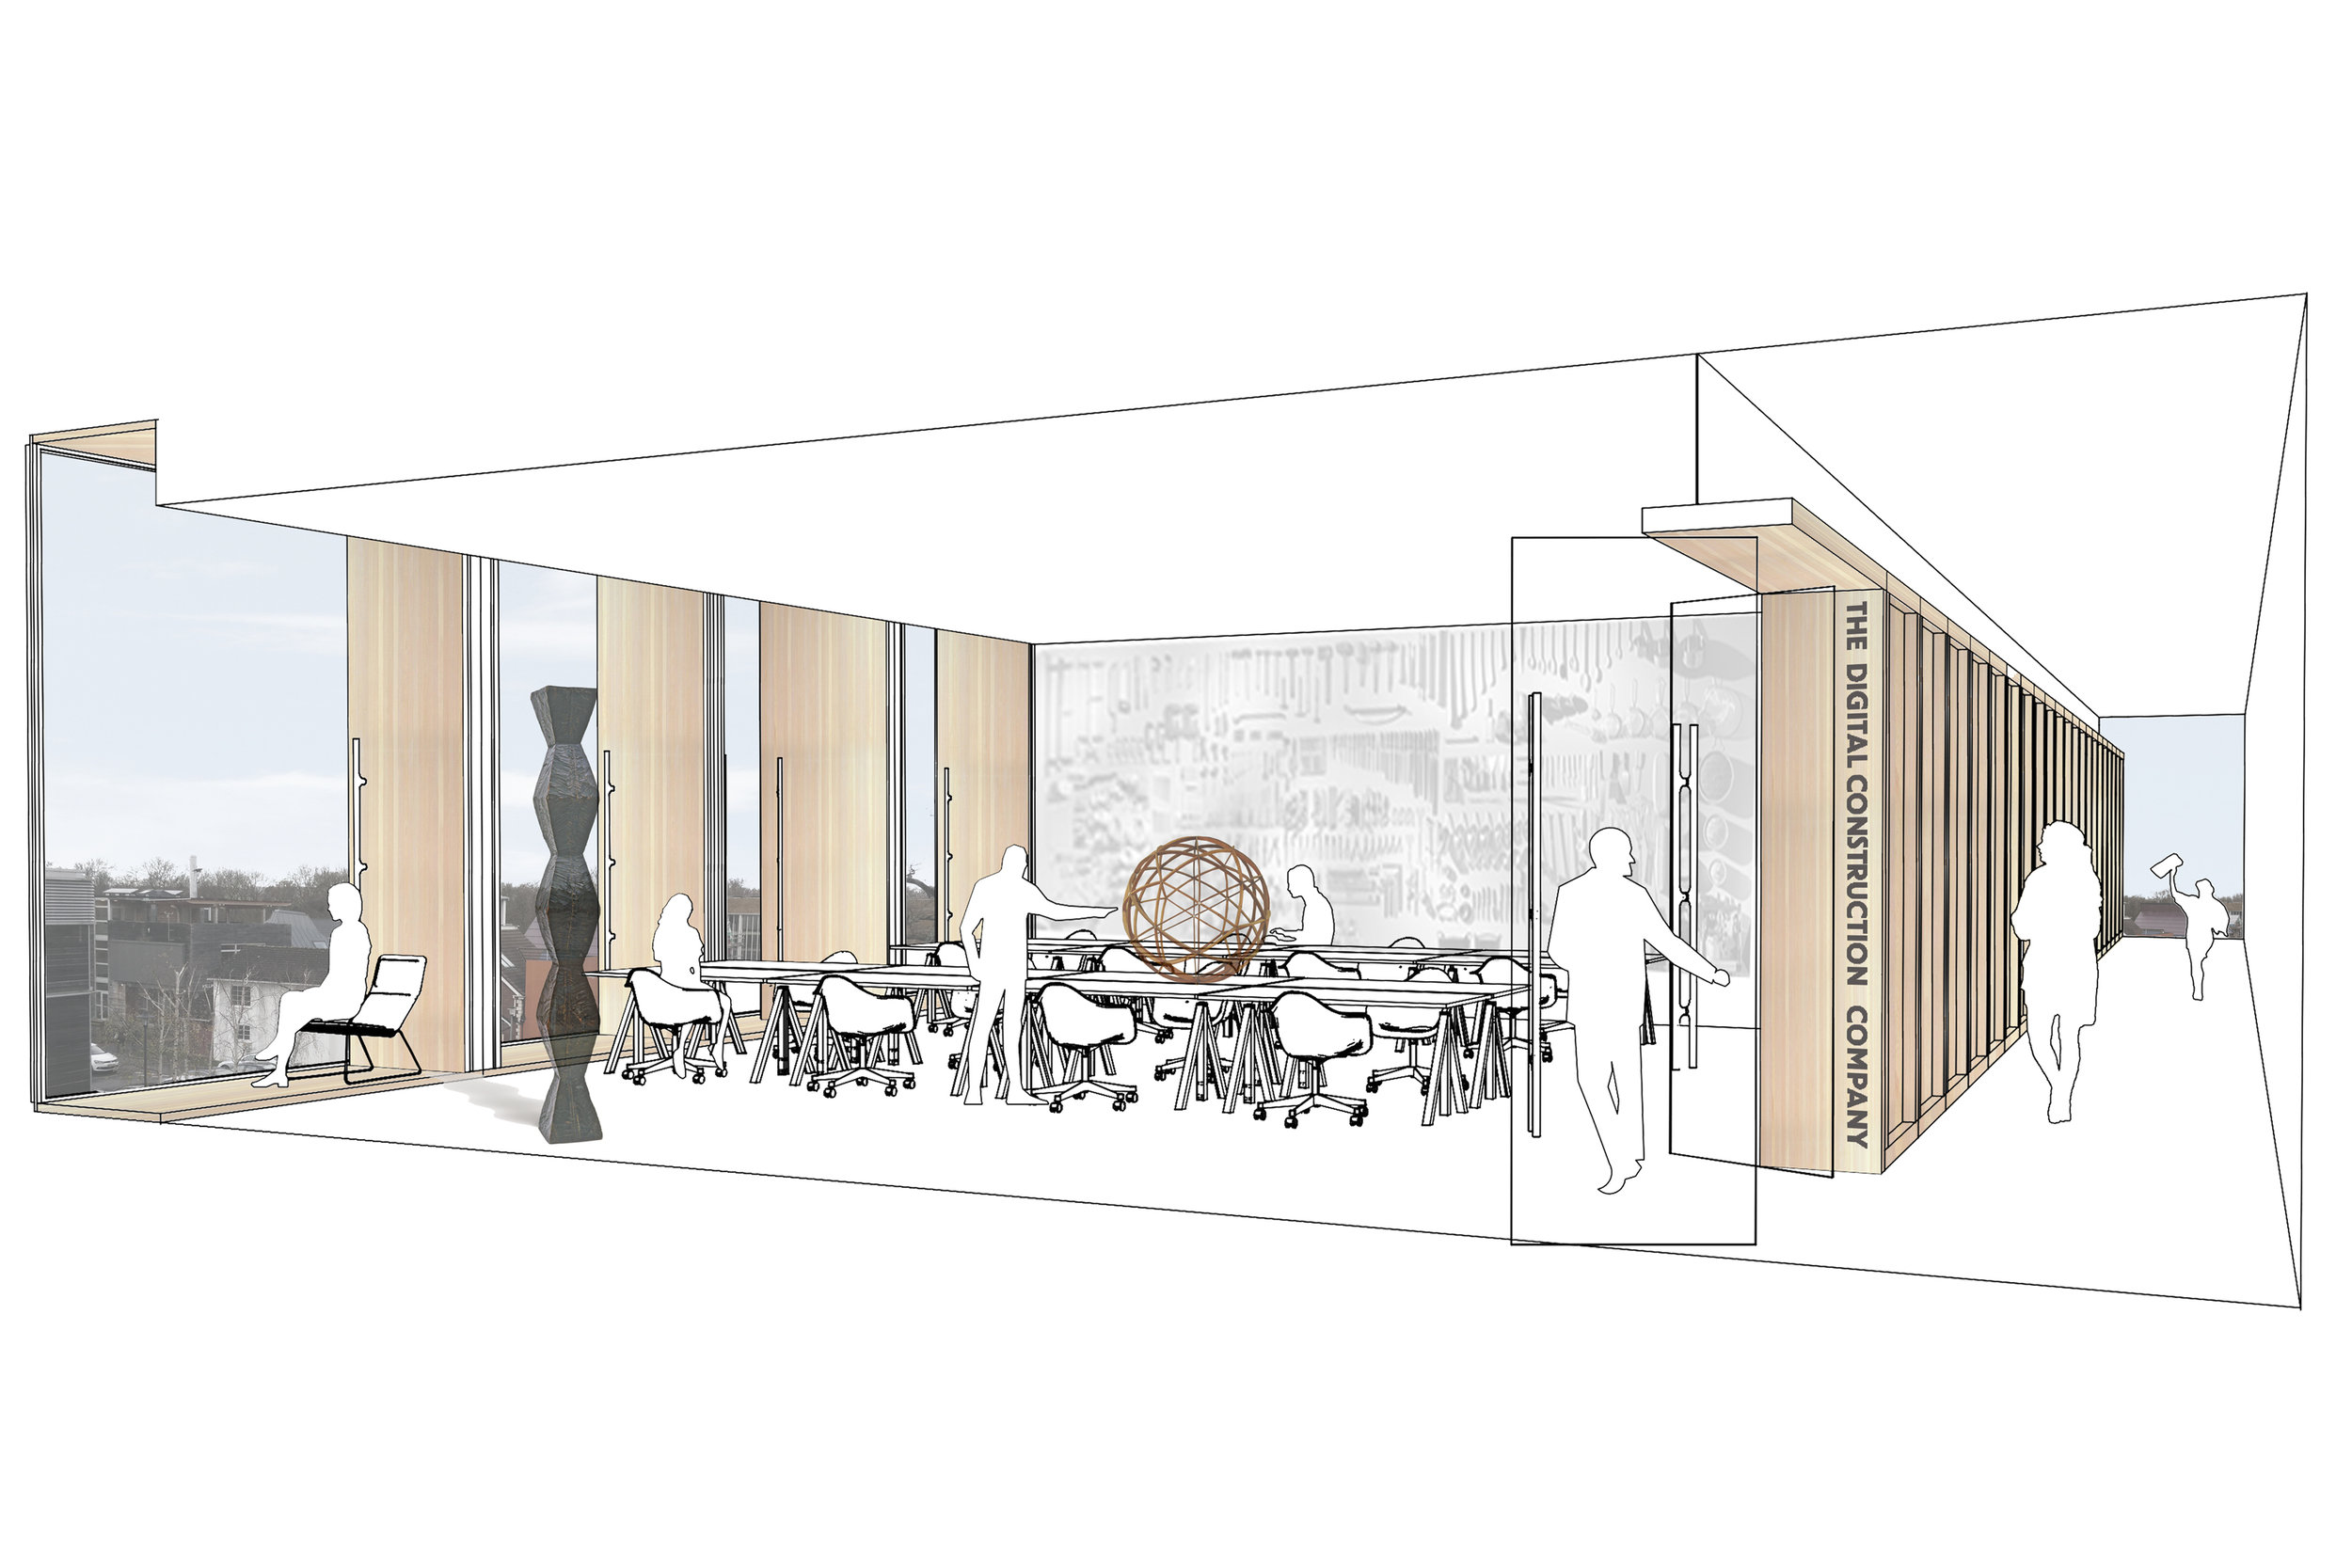 Interior Concept for Open Innovation Hub by Mowat and Company